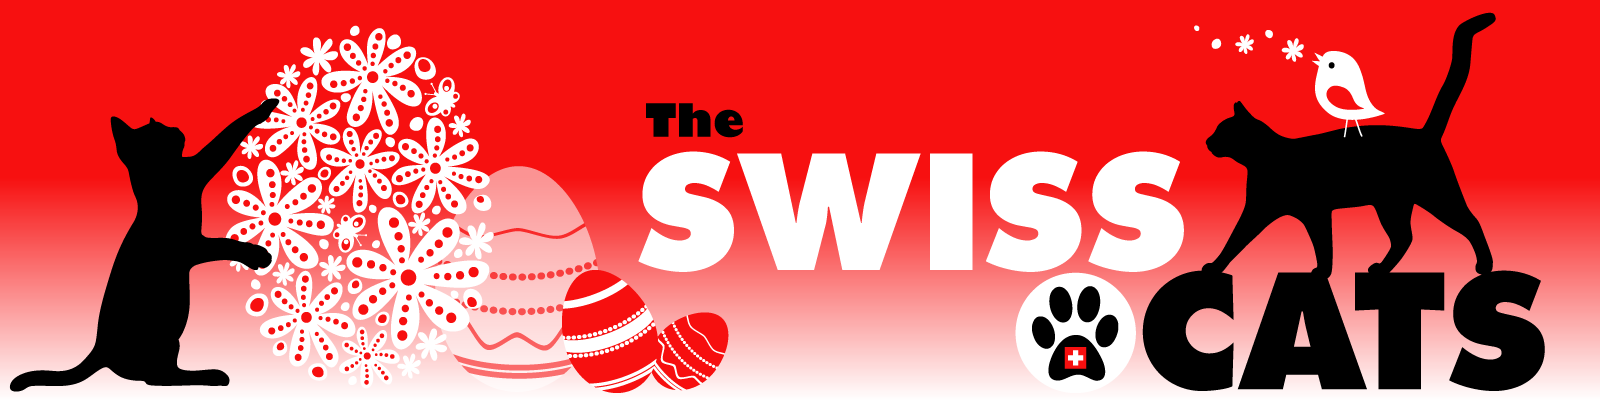 The Swiss Cats